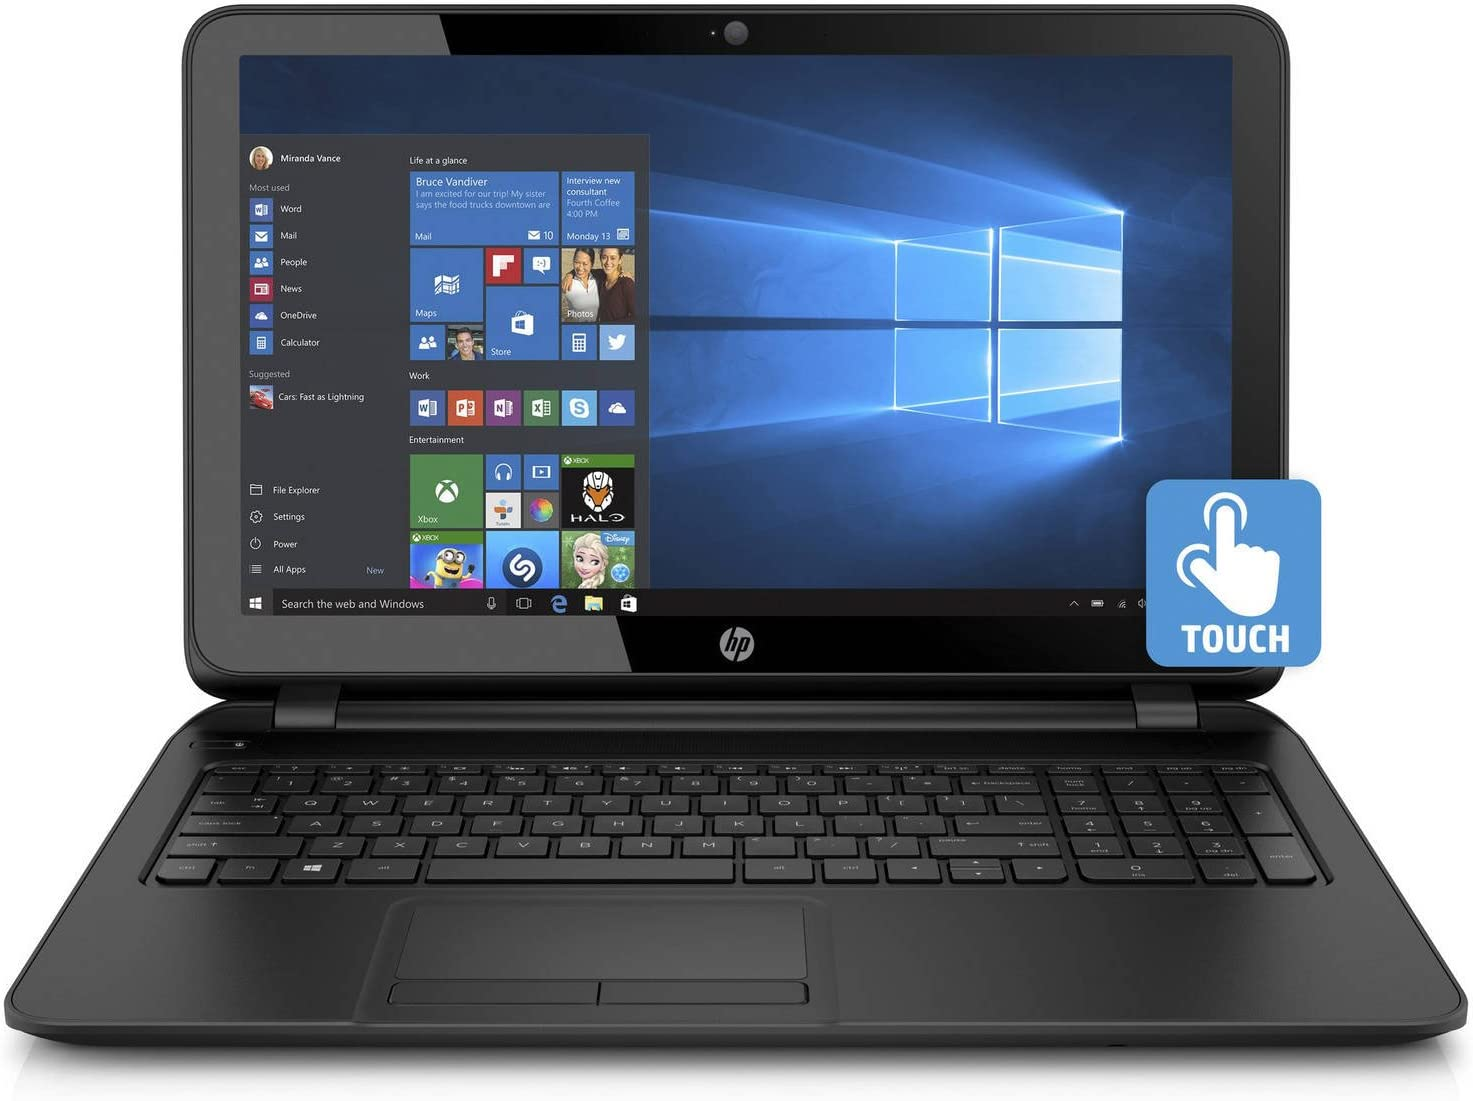 HP 15.6in HD High Performance Flagship Touchscreen Laptop Computer, Intel Quad-Core Pentium N3540 Up to 2.66GHz, 4GB RAM, 500GB HDD, DVDRW, USB 3.0, Webcam, WiFi, Windows 10(Renewed)